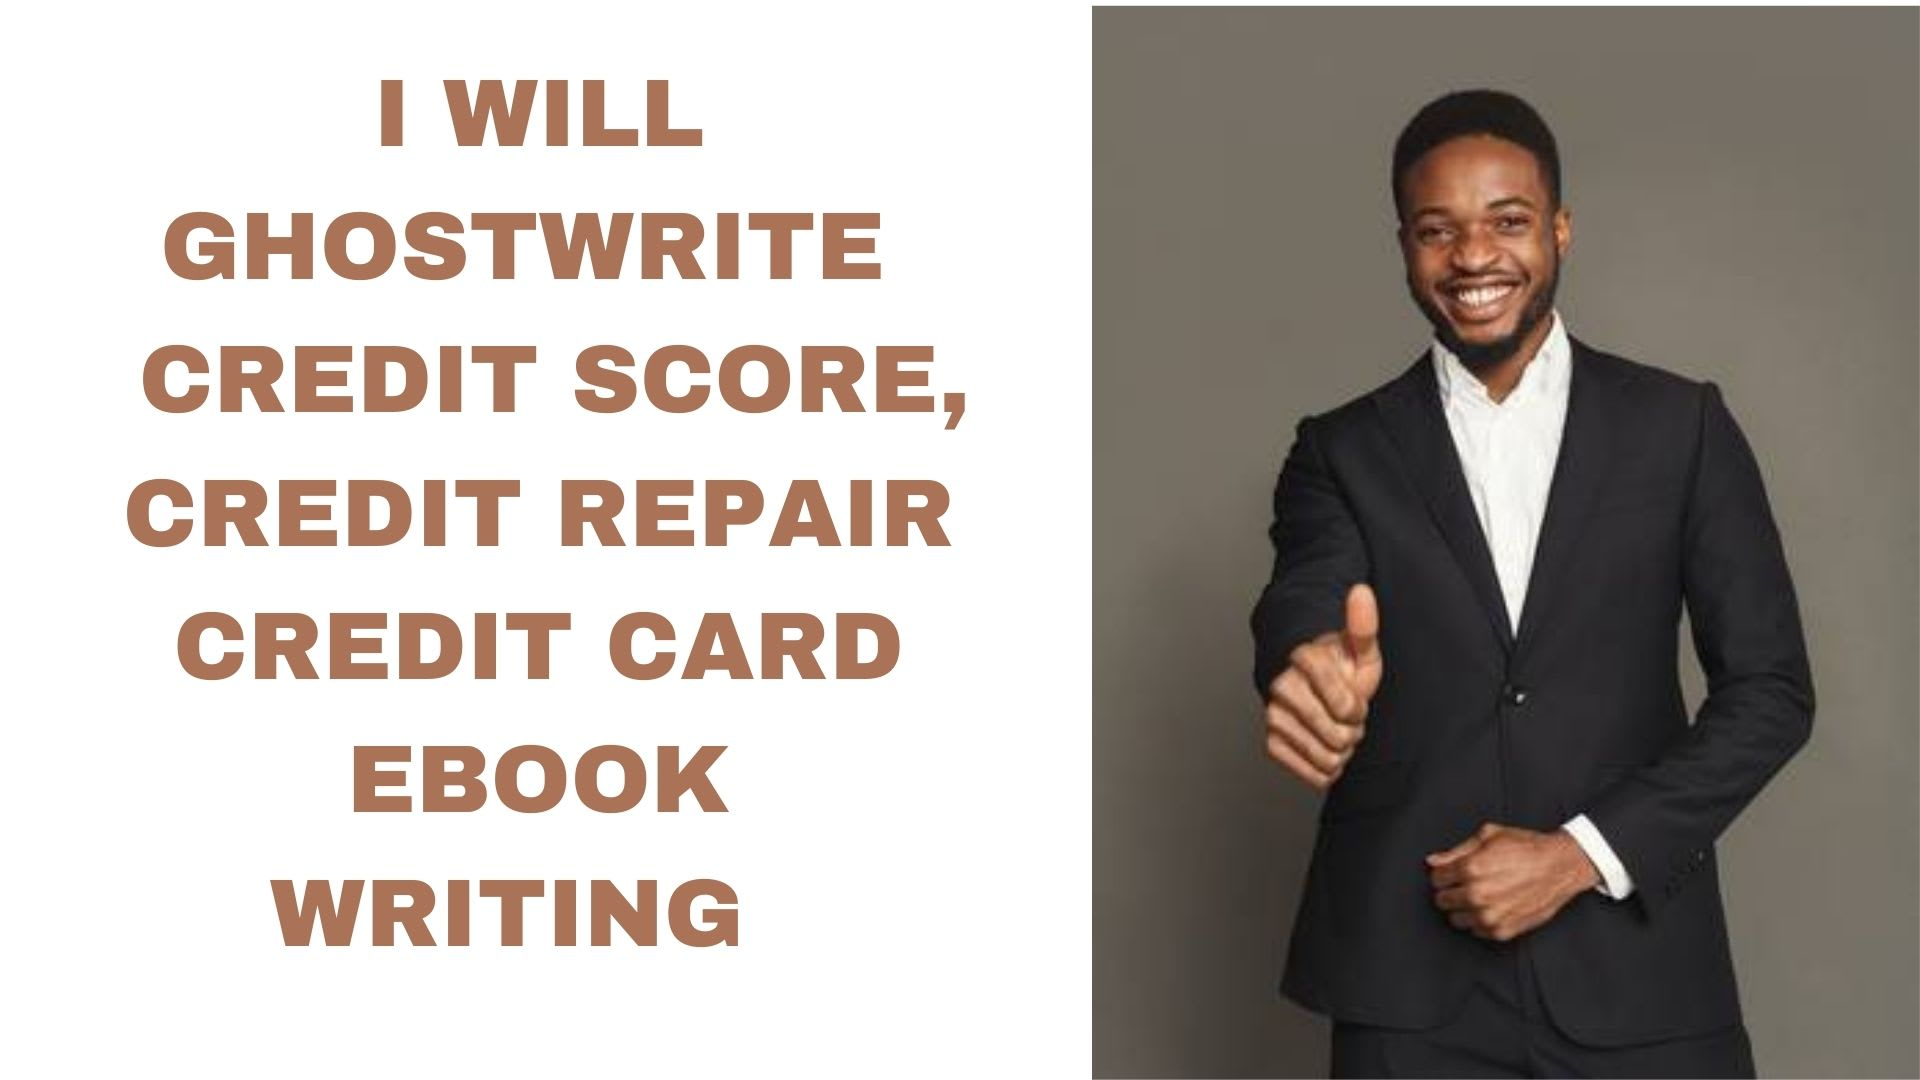 I will be your ebook writer on credit score credit repair ghostwriter, FiverrBox